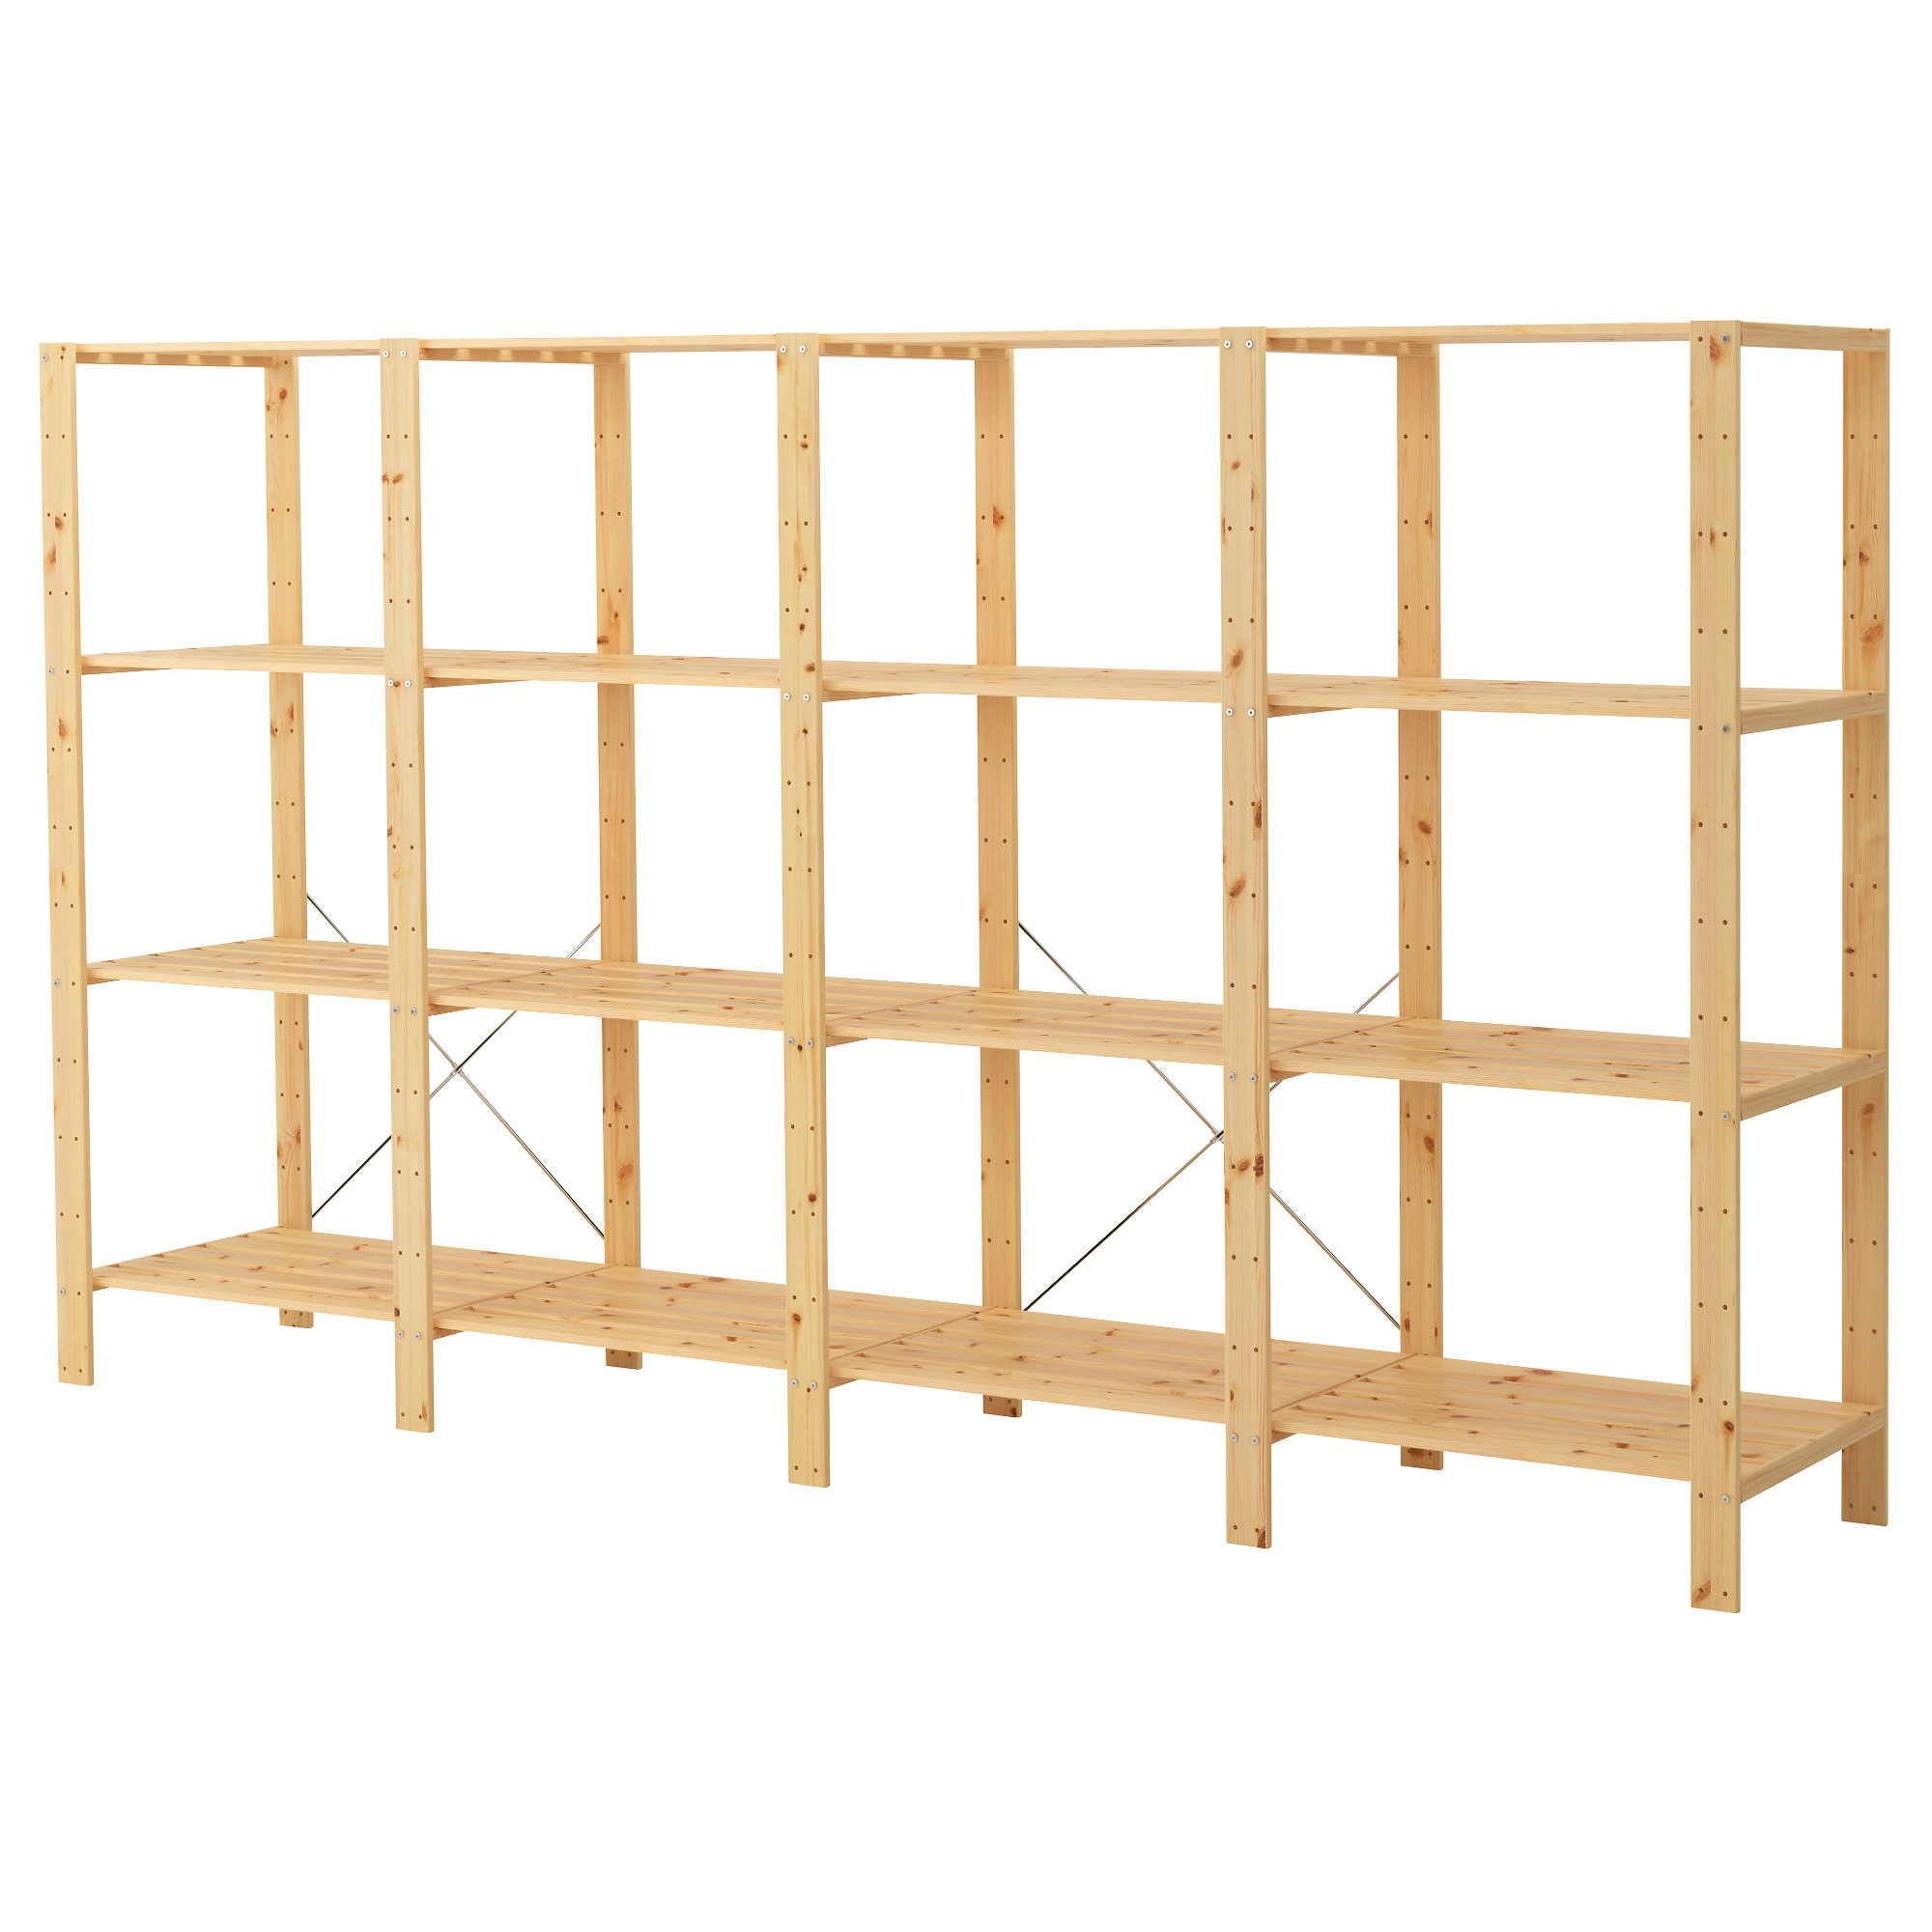 Ikea sten  HEJNE 4 section shelving unit - IKEA